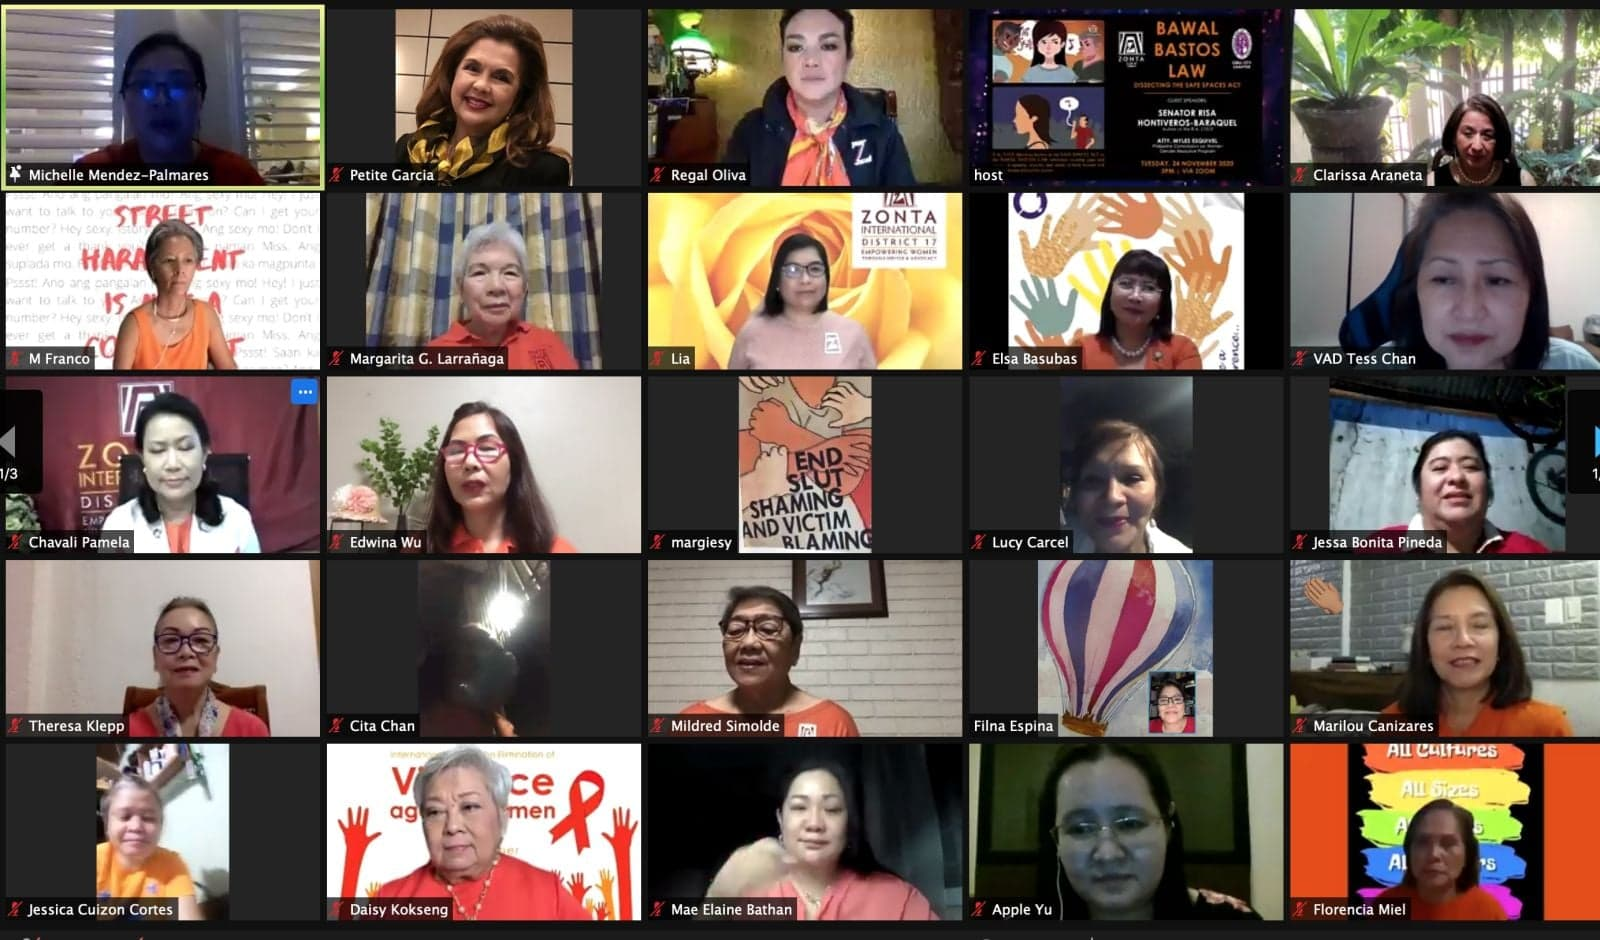 D:\ROBBY PERSONAL FILES 2013\RMA FILES\ZONTA 2\2020 18 DAYS OF ACTIVISM\FINAL PR ARTICLES\PR 13 - WEBINAR SAFE SPACES ACT\3.jpg